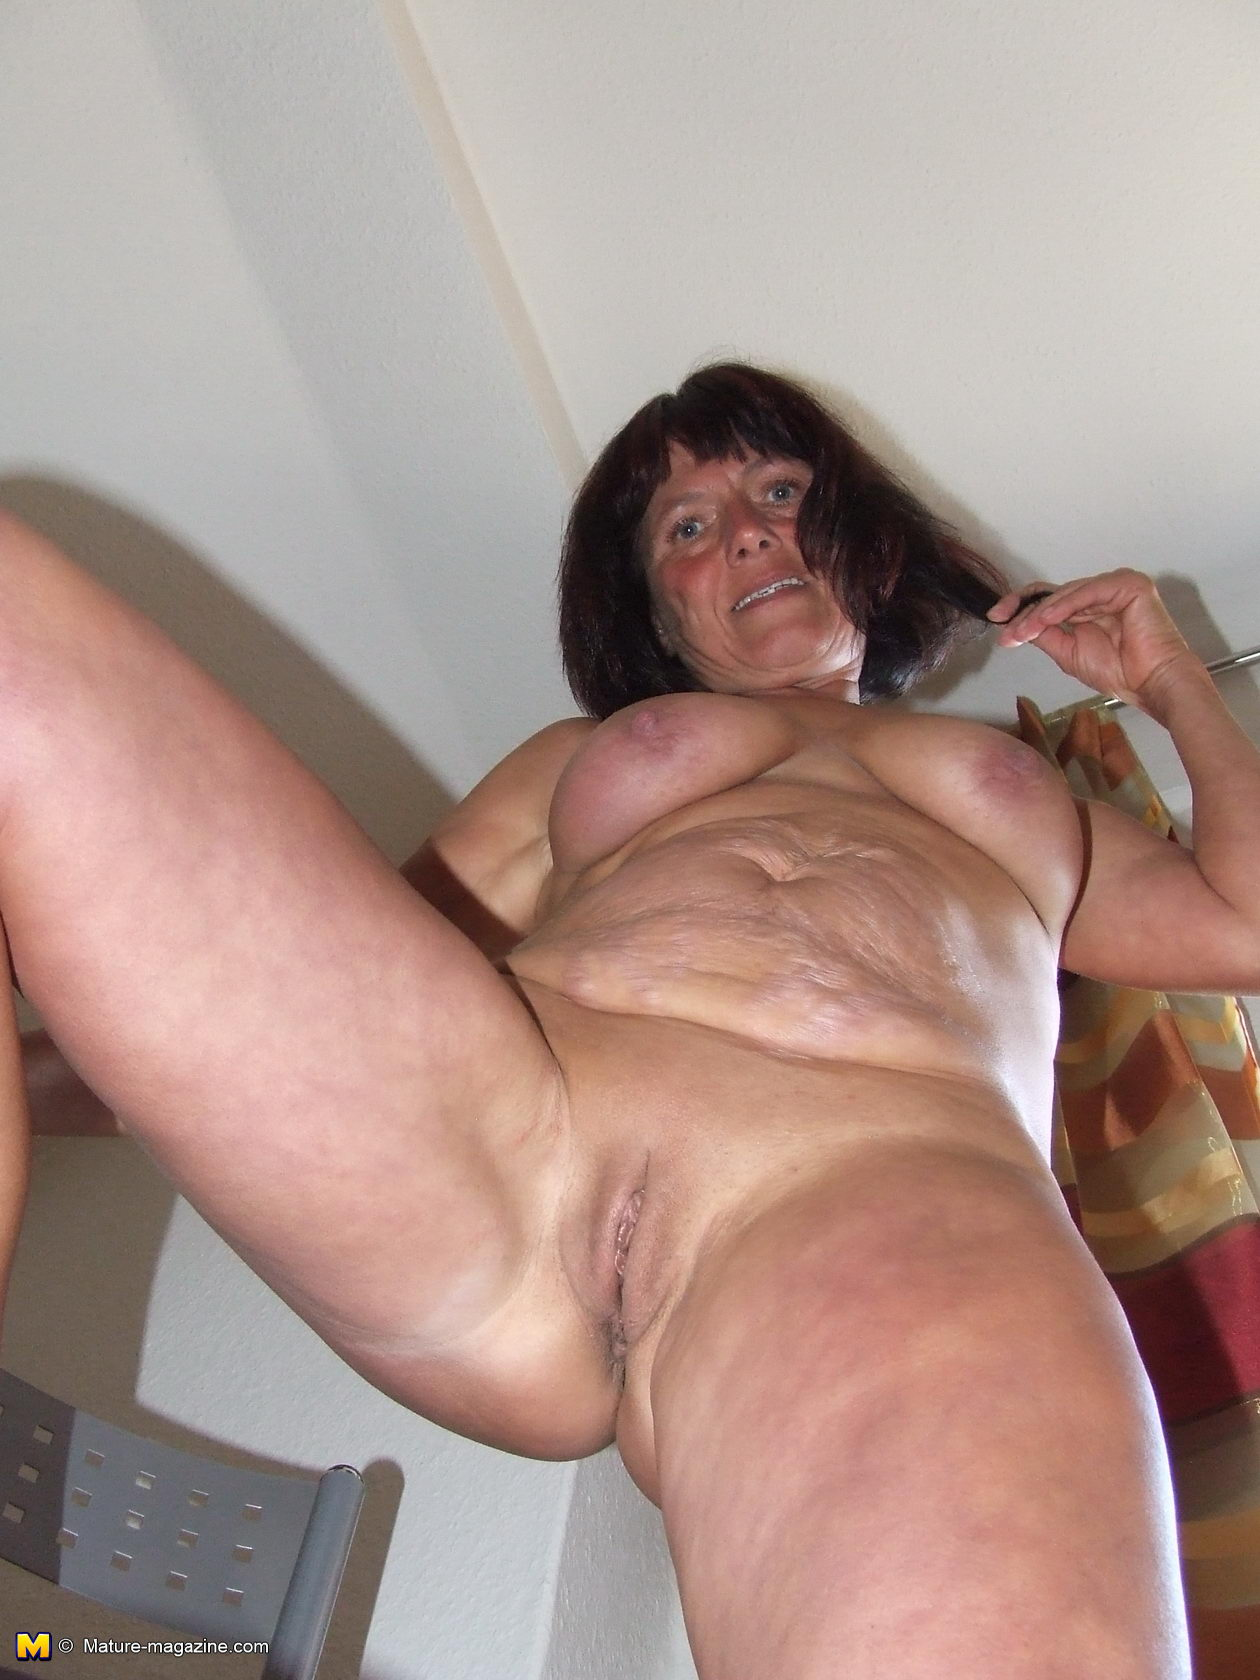 Hot mama in black lingerie blows two guys at once and get analed 4